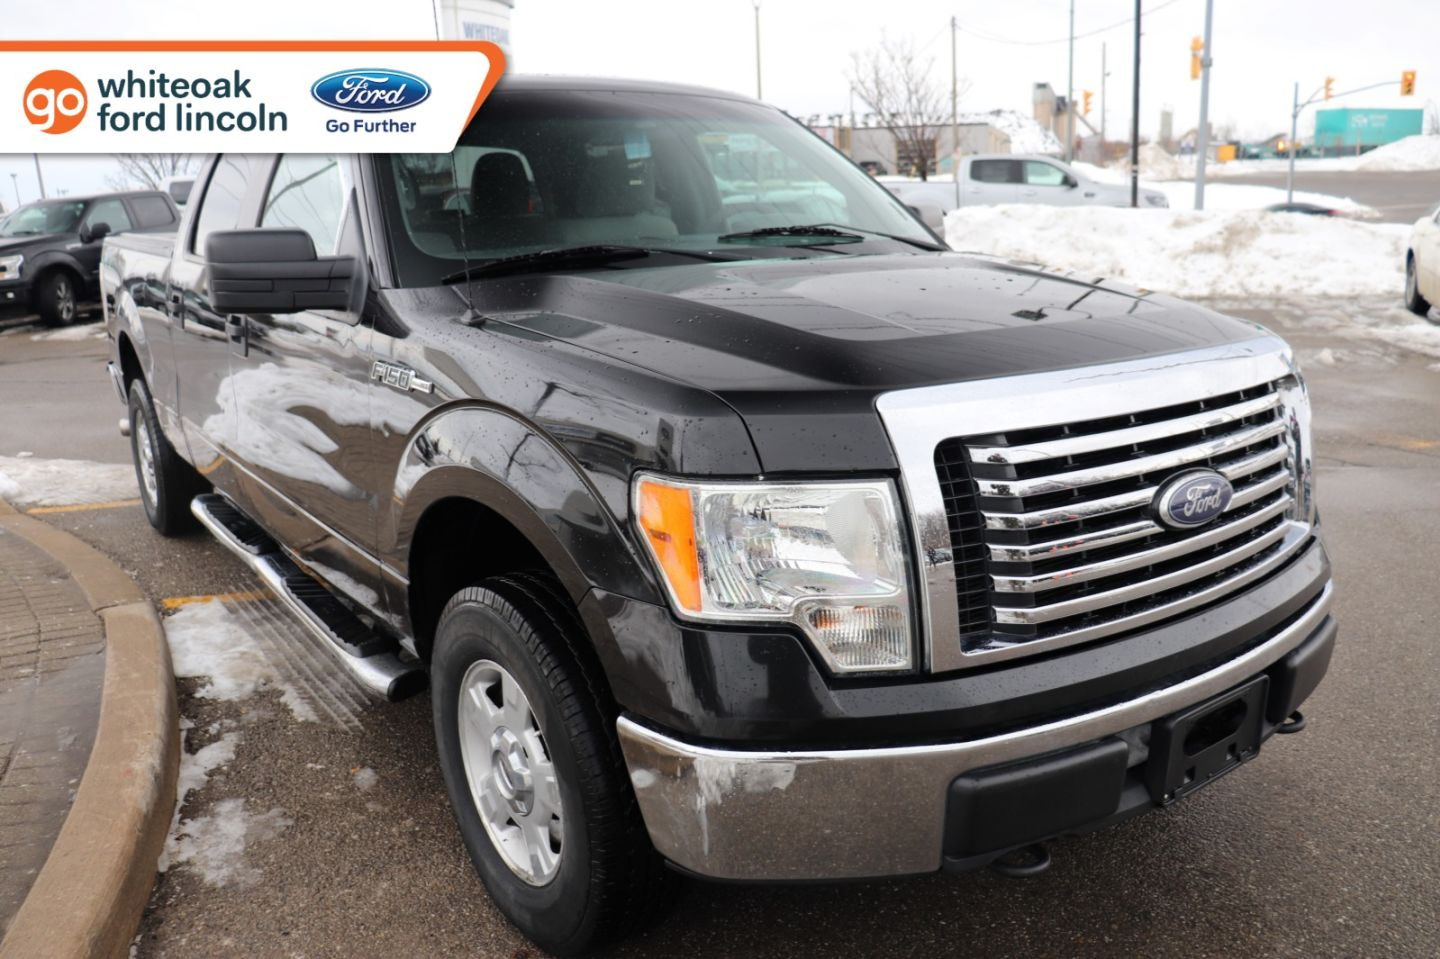 2010 Ford F-150 XLT for sale in Mississauga, Ontario